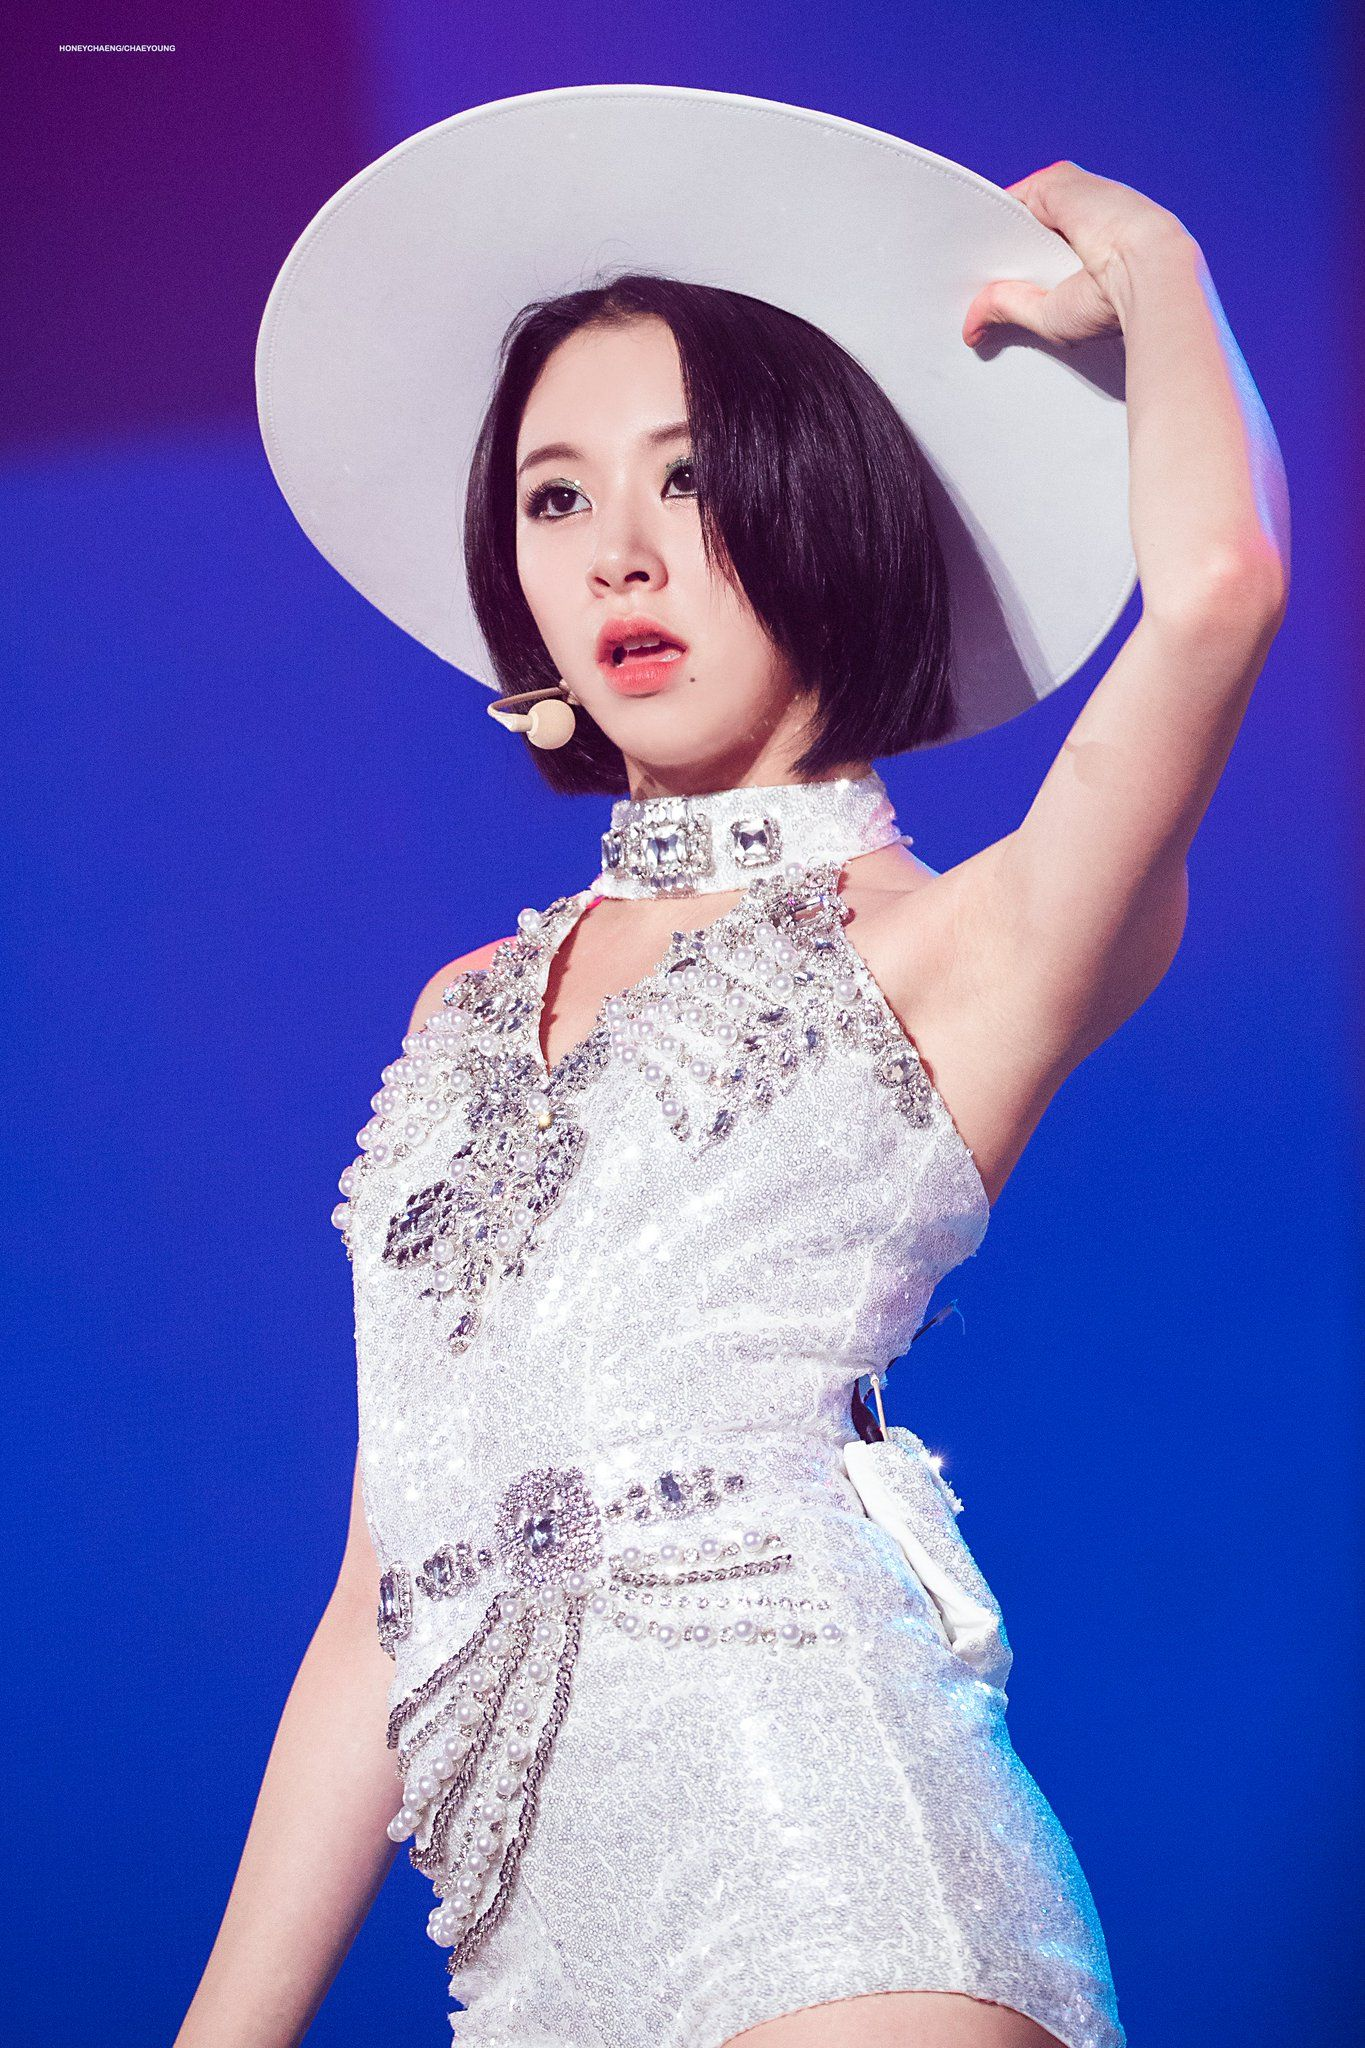 chaeyoung stage 21